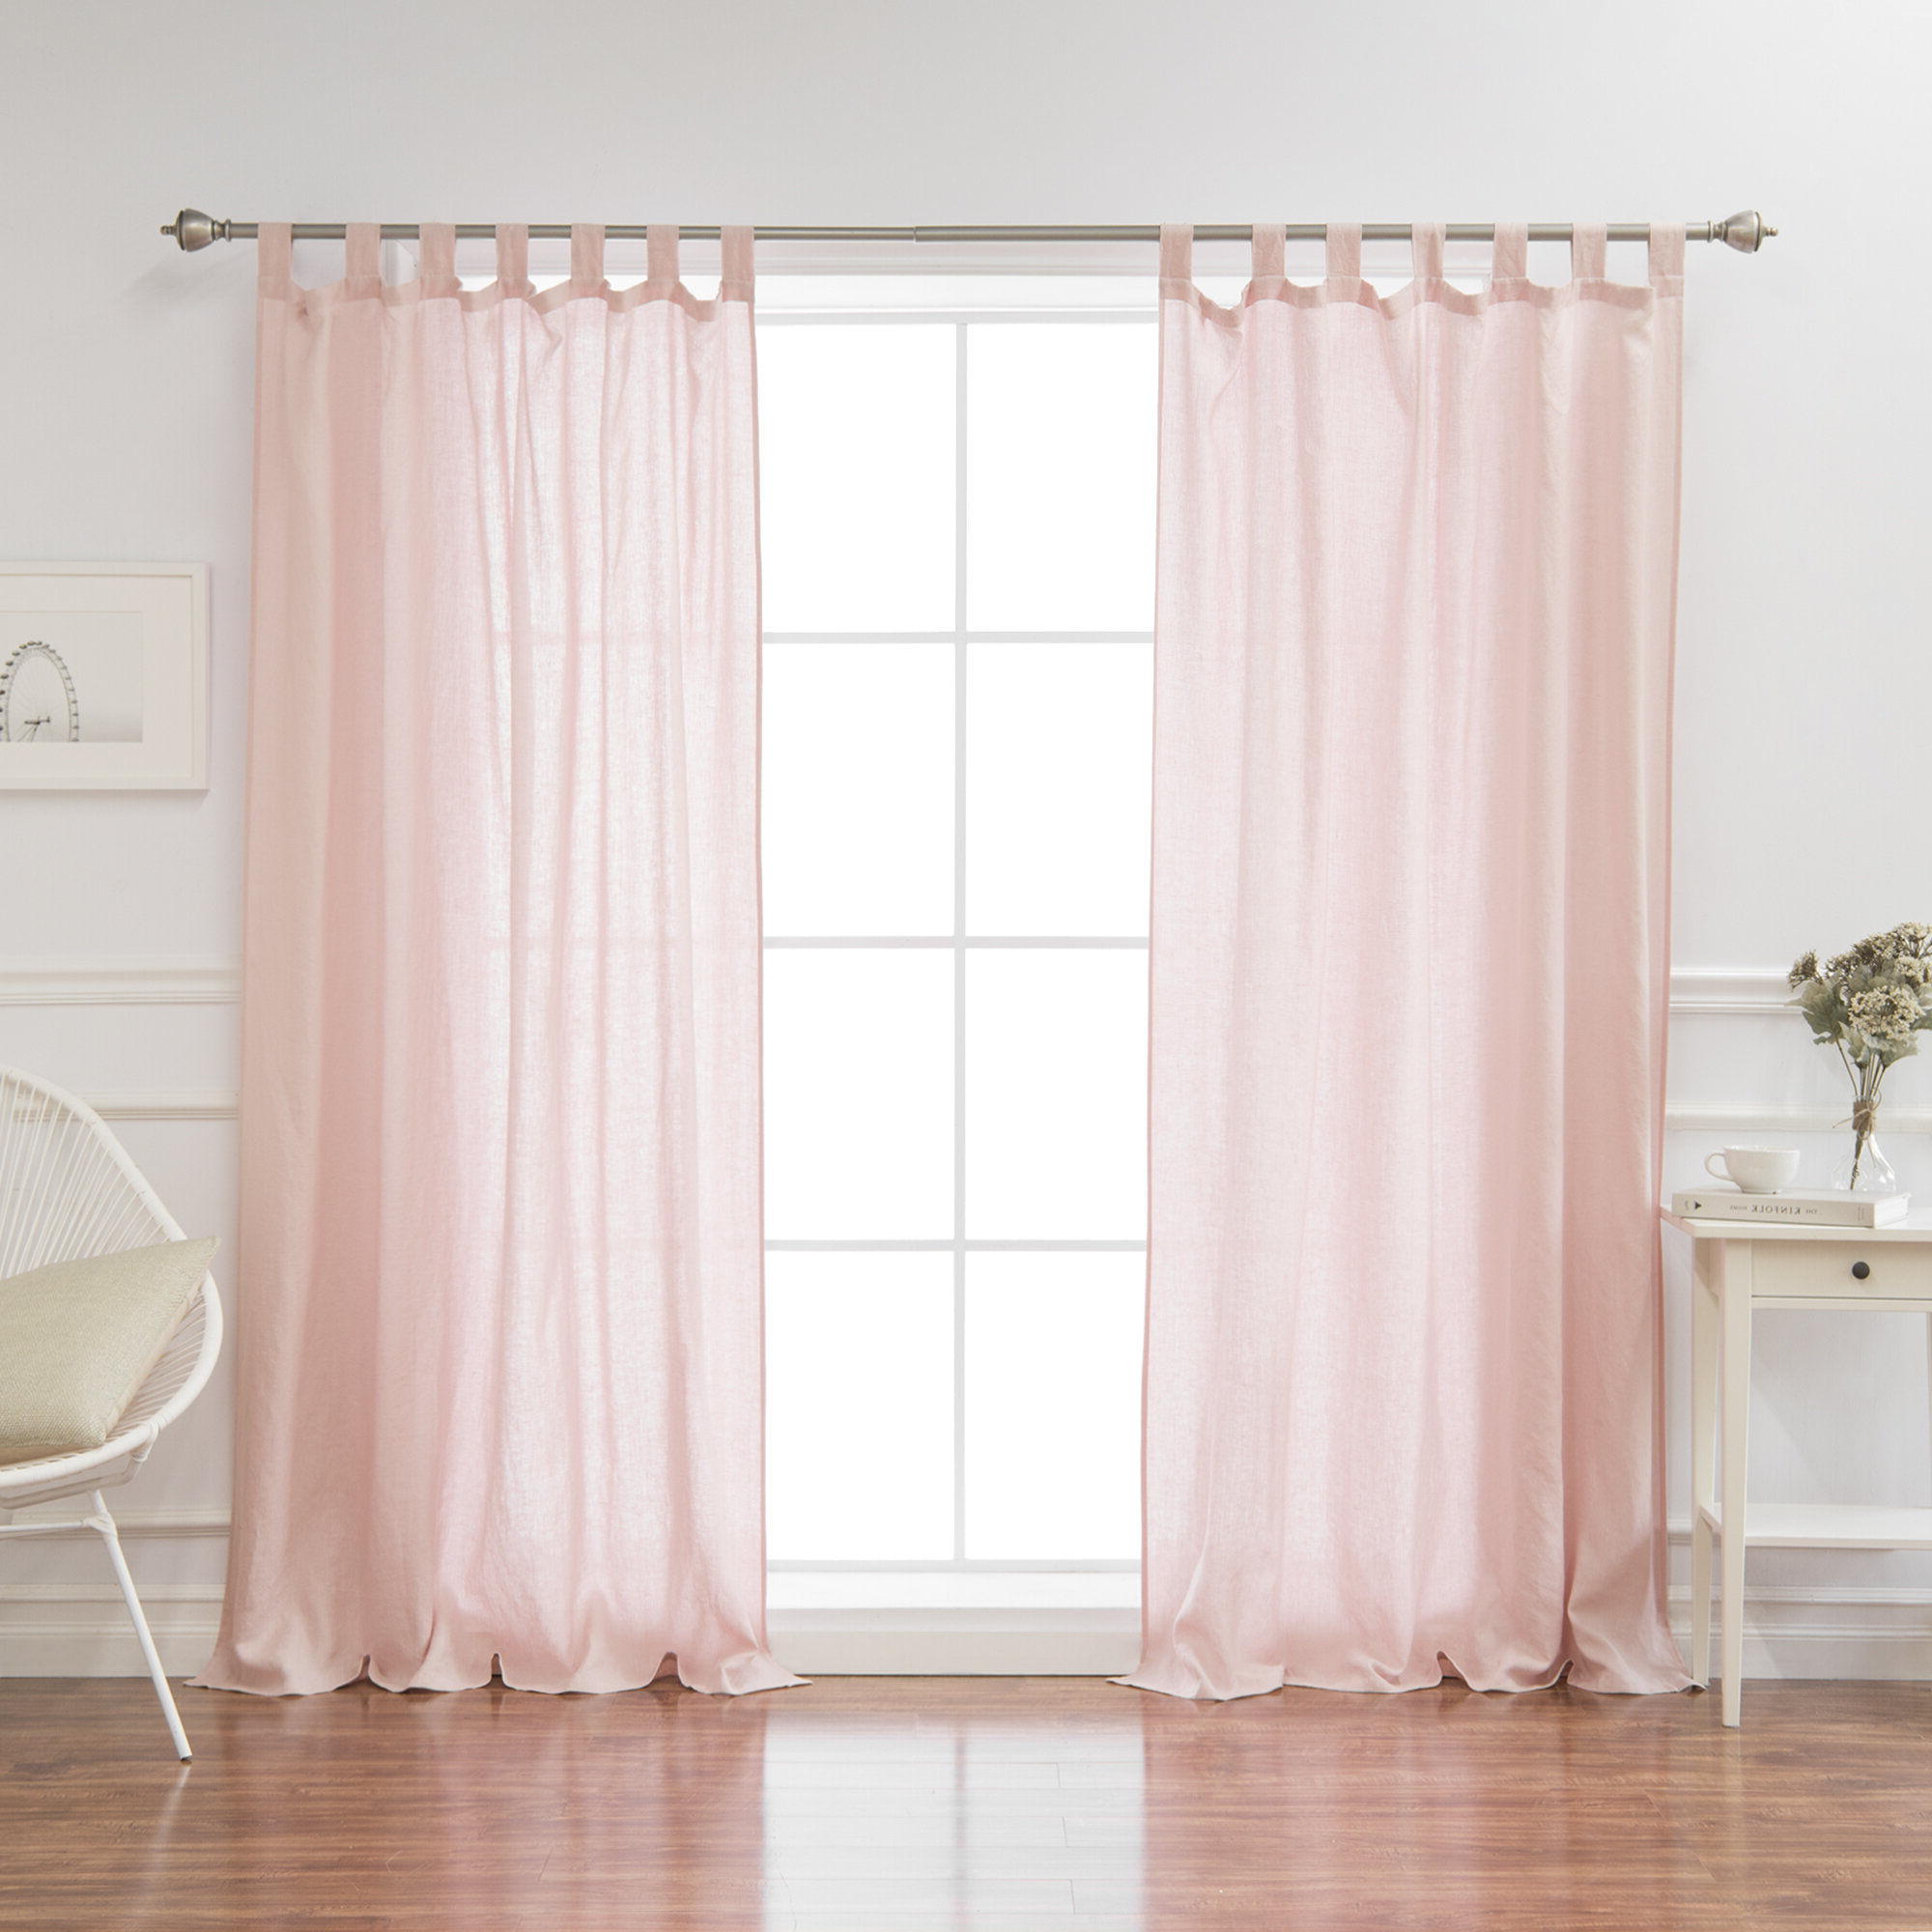 Most Recently Released Montezuma Flax Solid Semi Sheer Tab Top Single Curtain Panel Pertaining To Tab Top Sheer Single Curtain Panels (View 14 of 20)